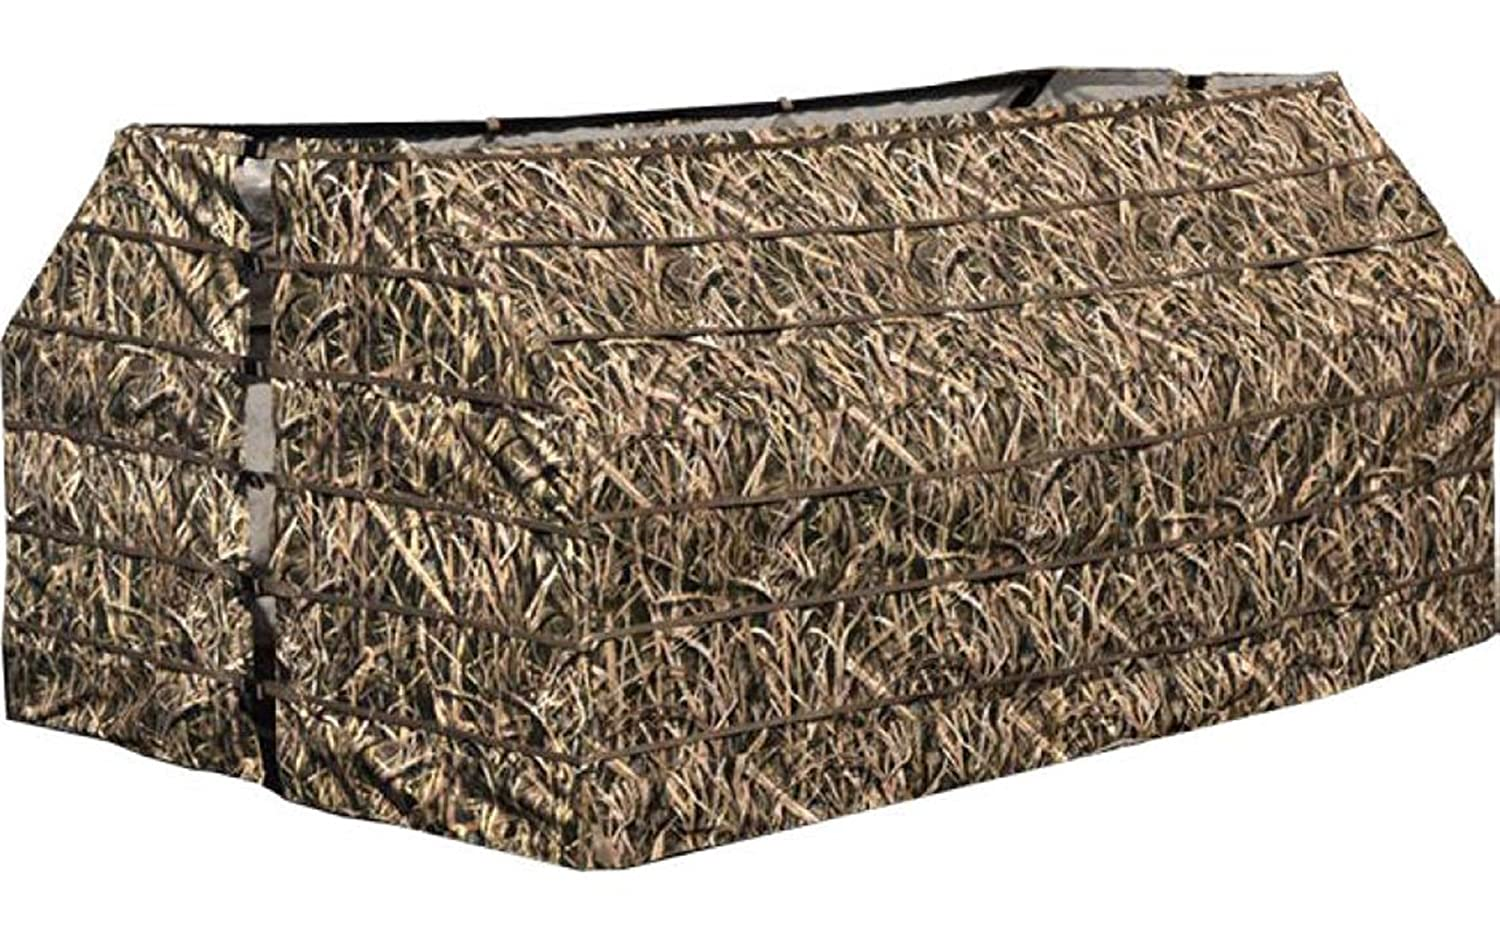 new xa blades avian x portable house blinds shadow a the plans grass mossy duck dog frame oak goose blind homemade cool